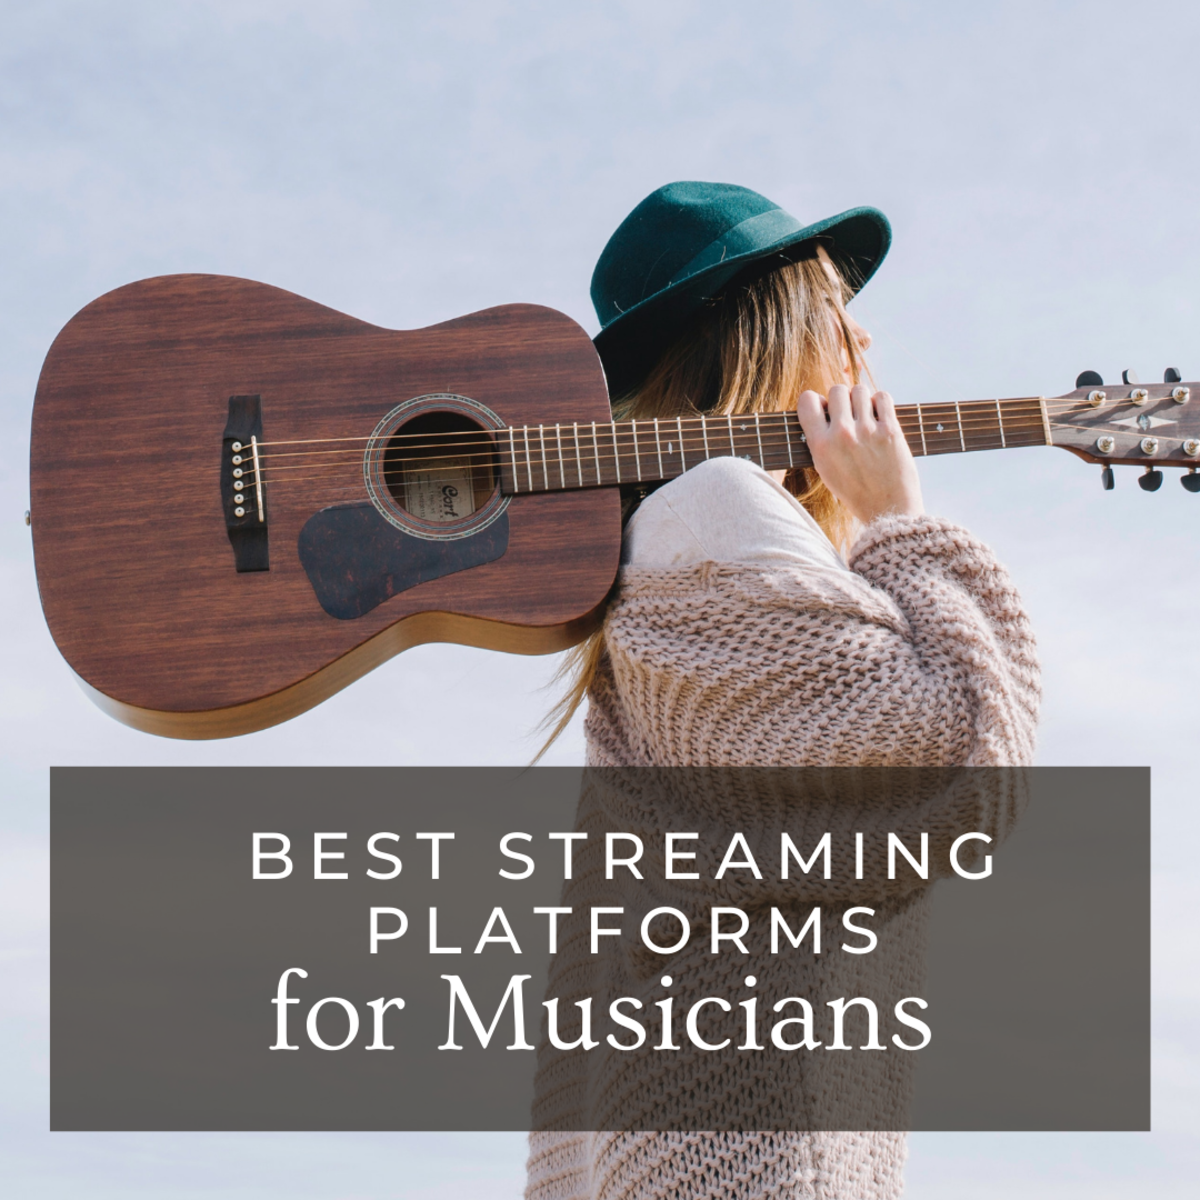 Best Streaming Platforms and Distributors for Musicians